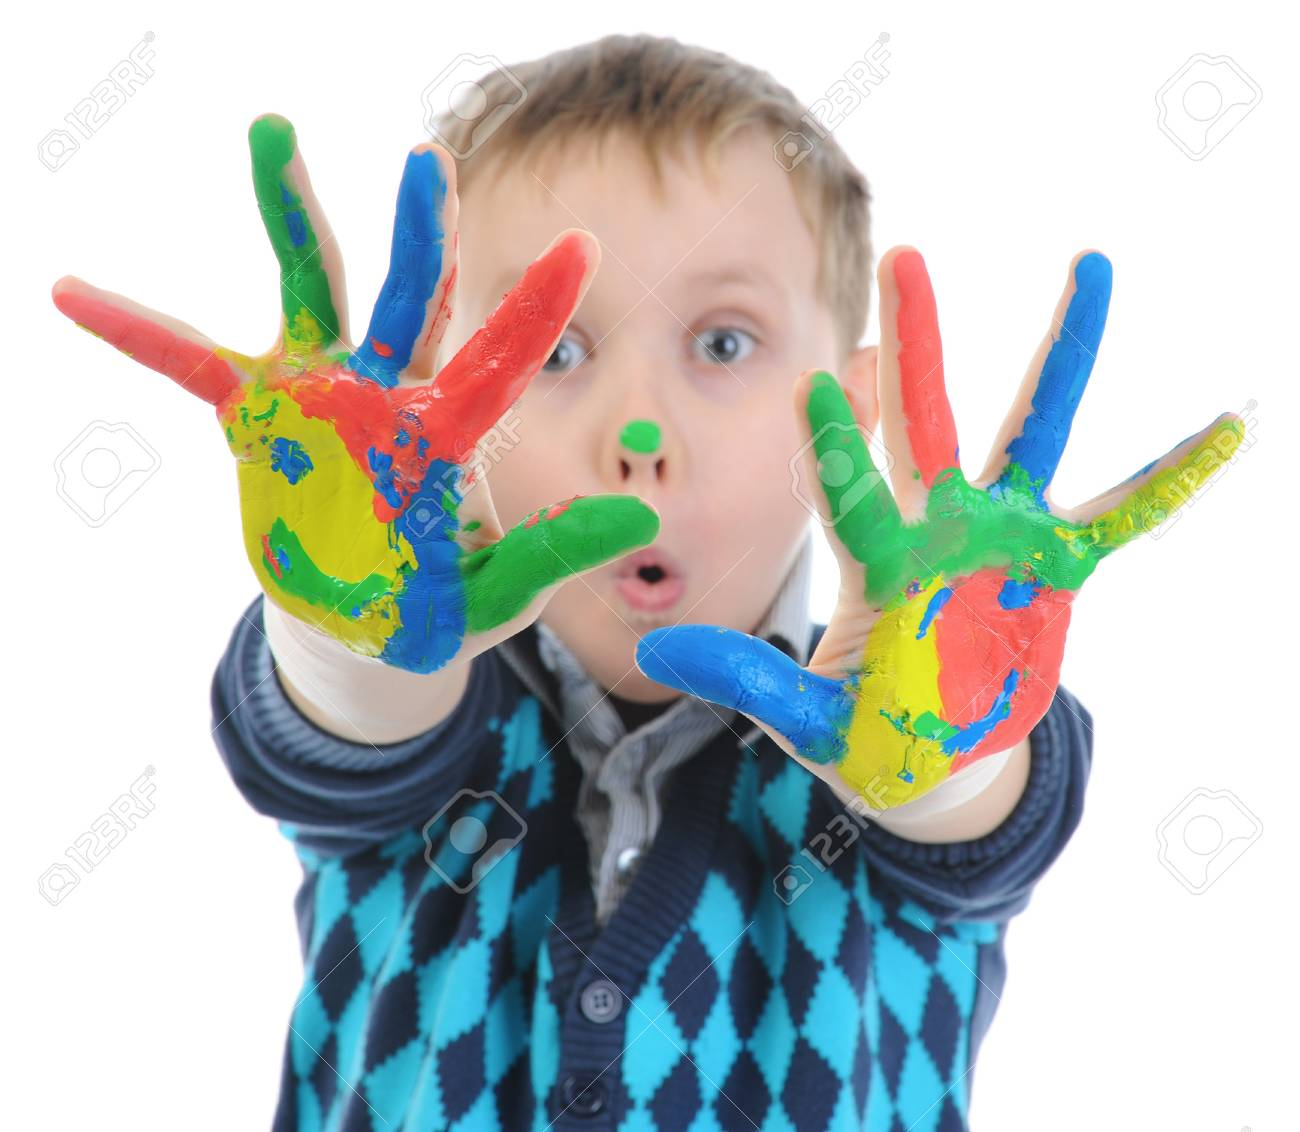 smiling boy with the palms painted by a paint. Stock Photo - 9319073